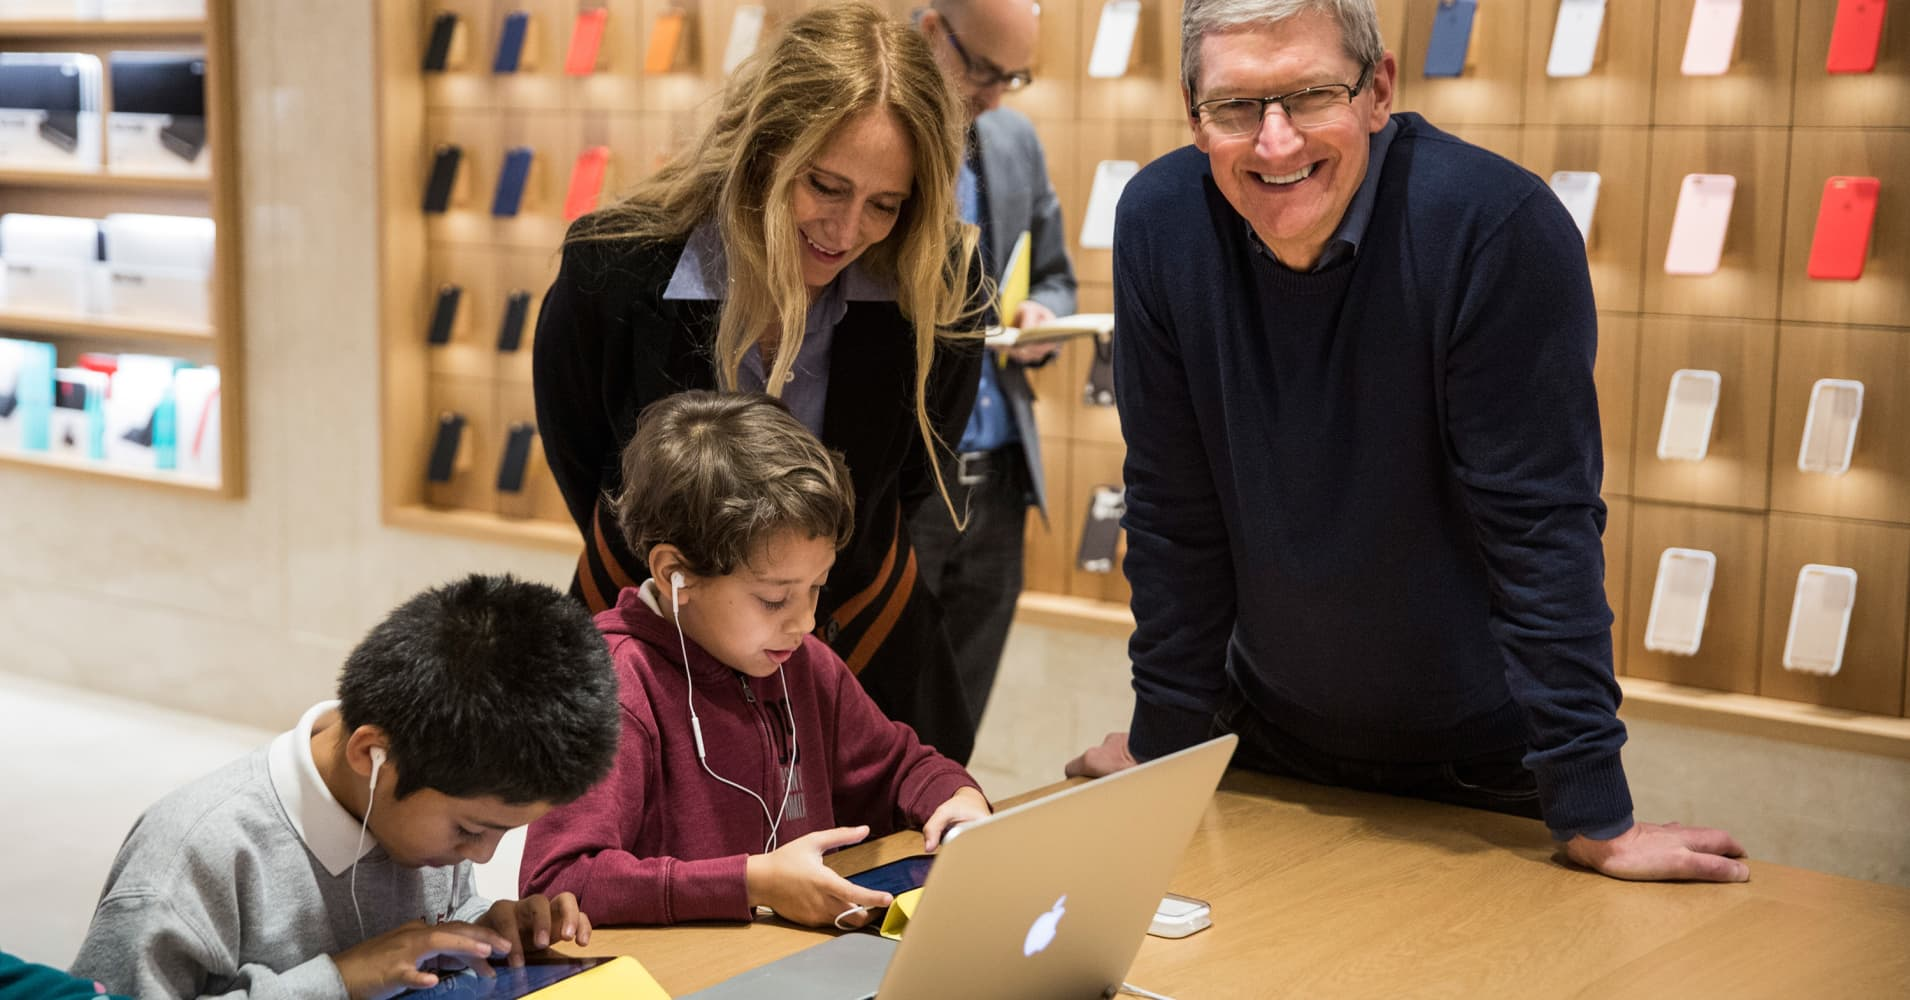 The Apple car just made the 'mother of all' lists: Tim Cook's most-hyped projects